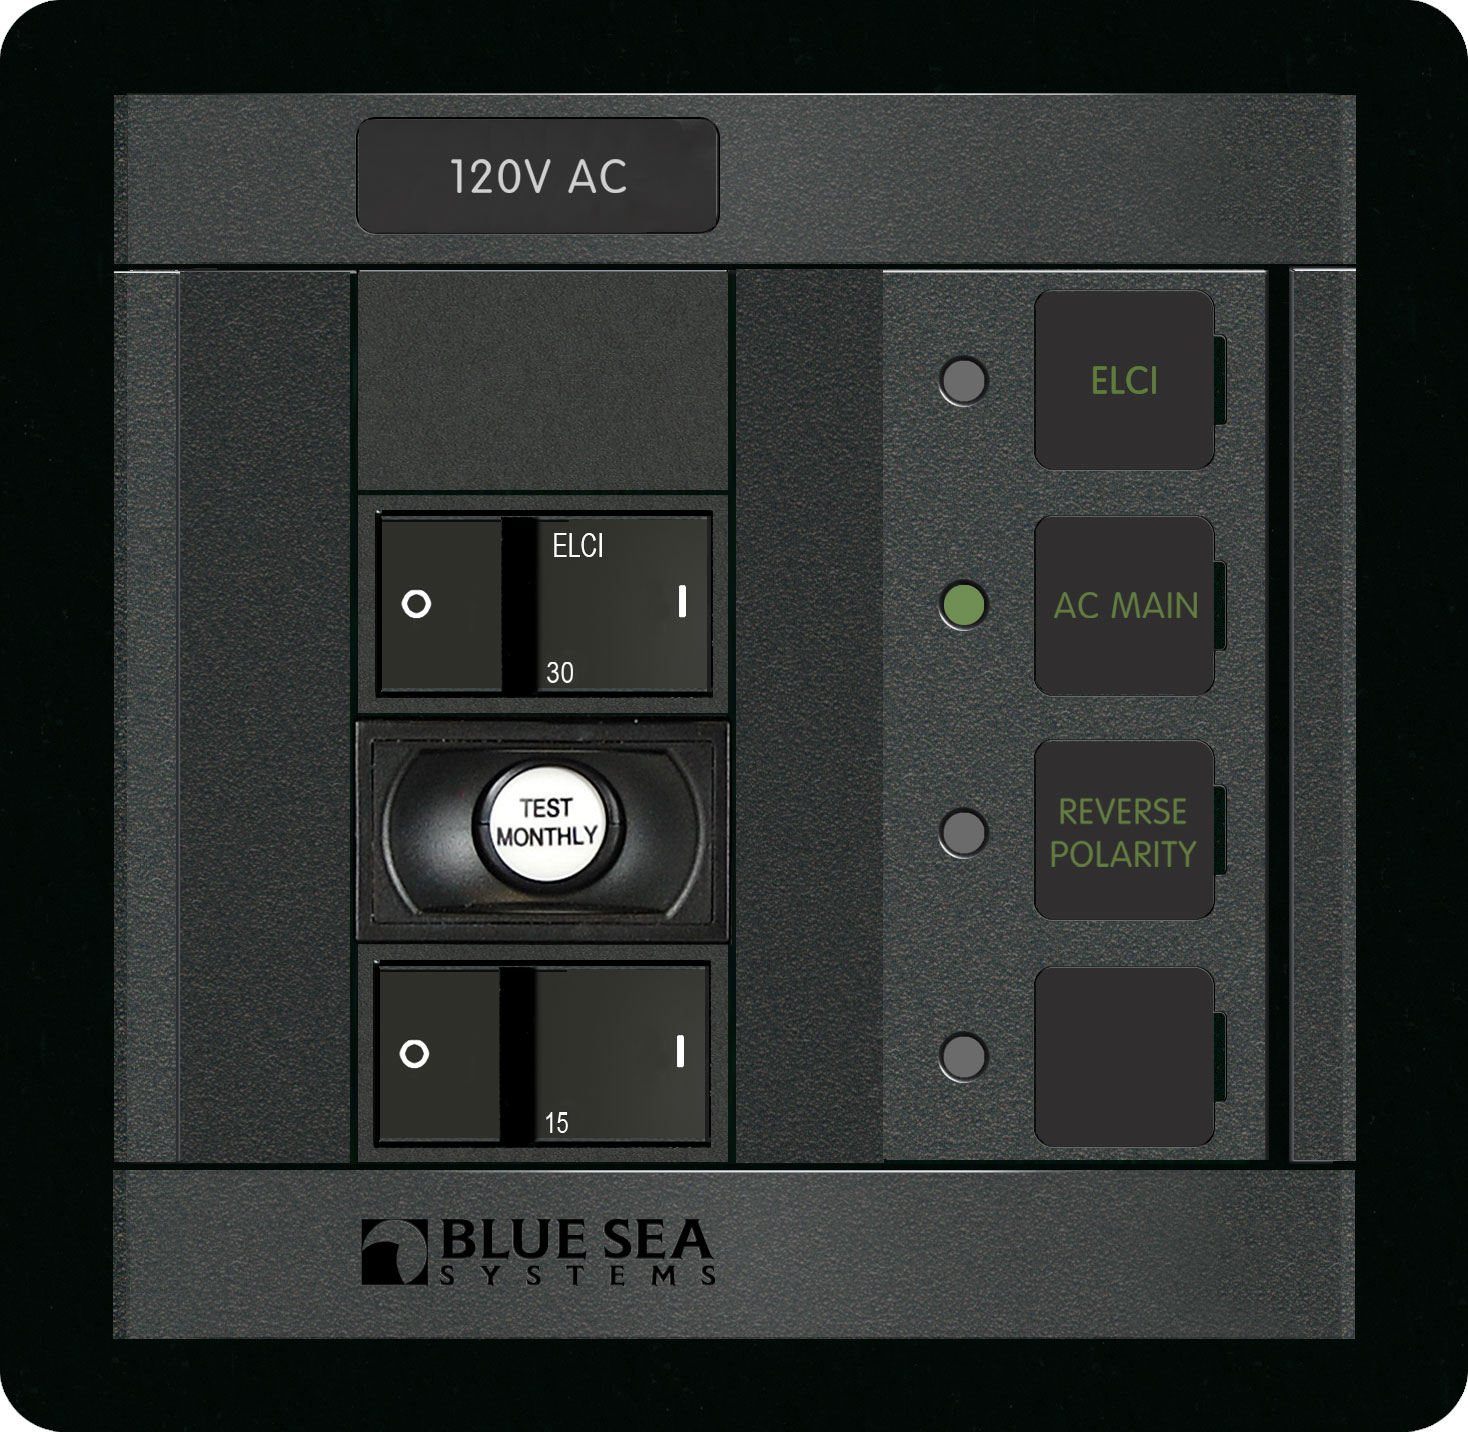 An ELCI panel for use on a boat